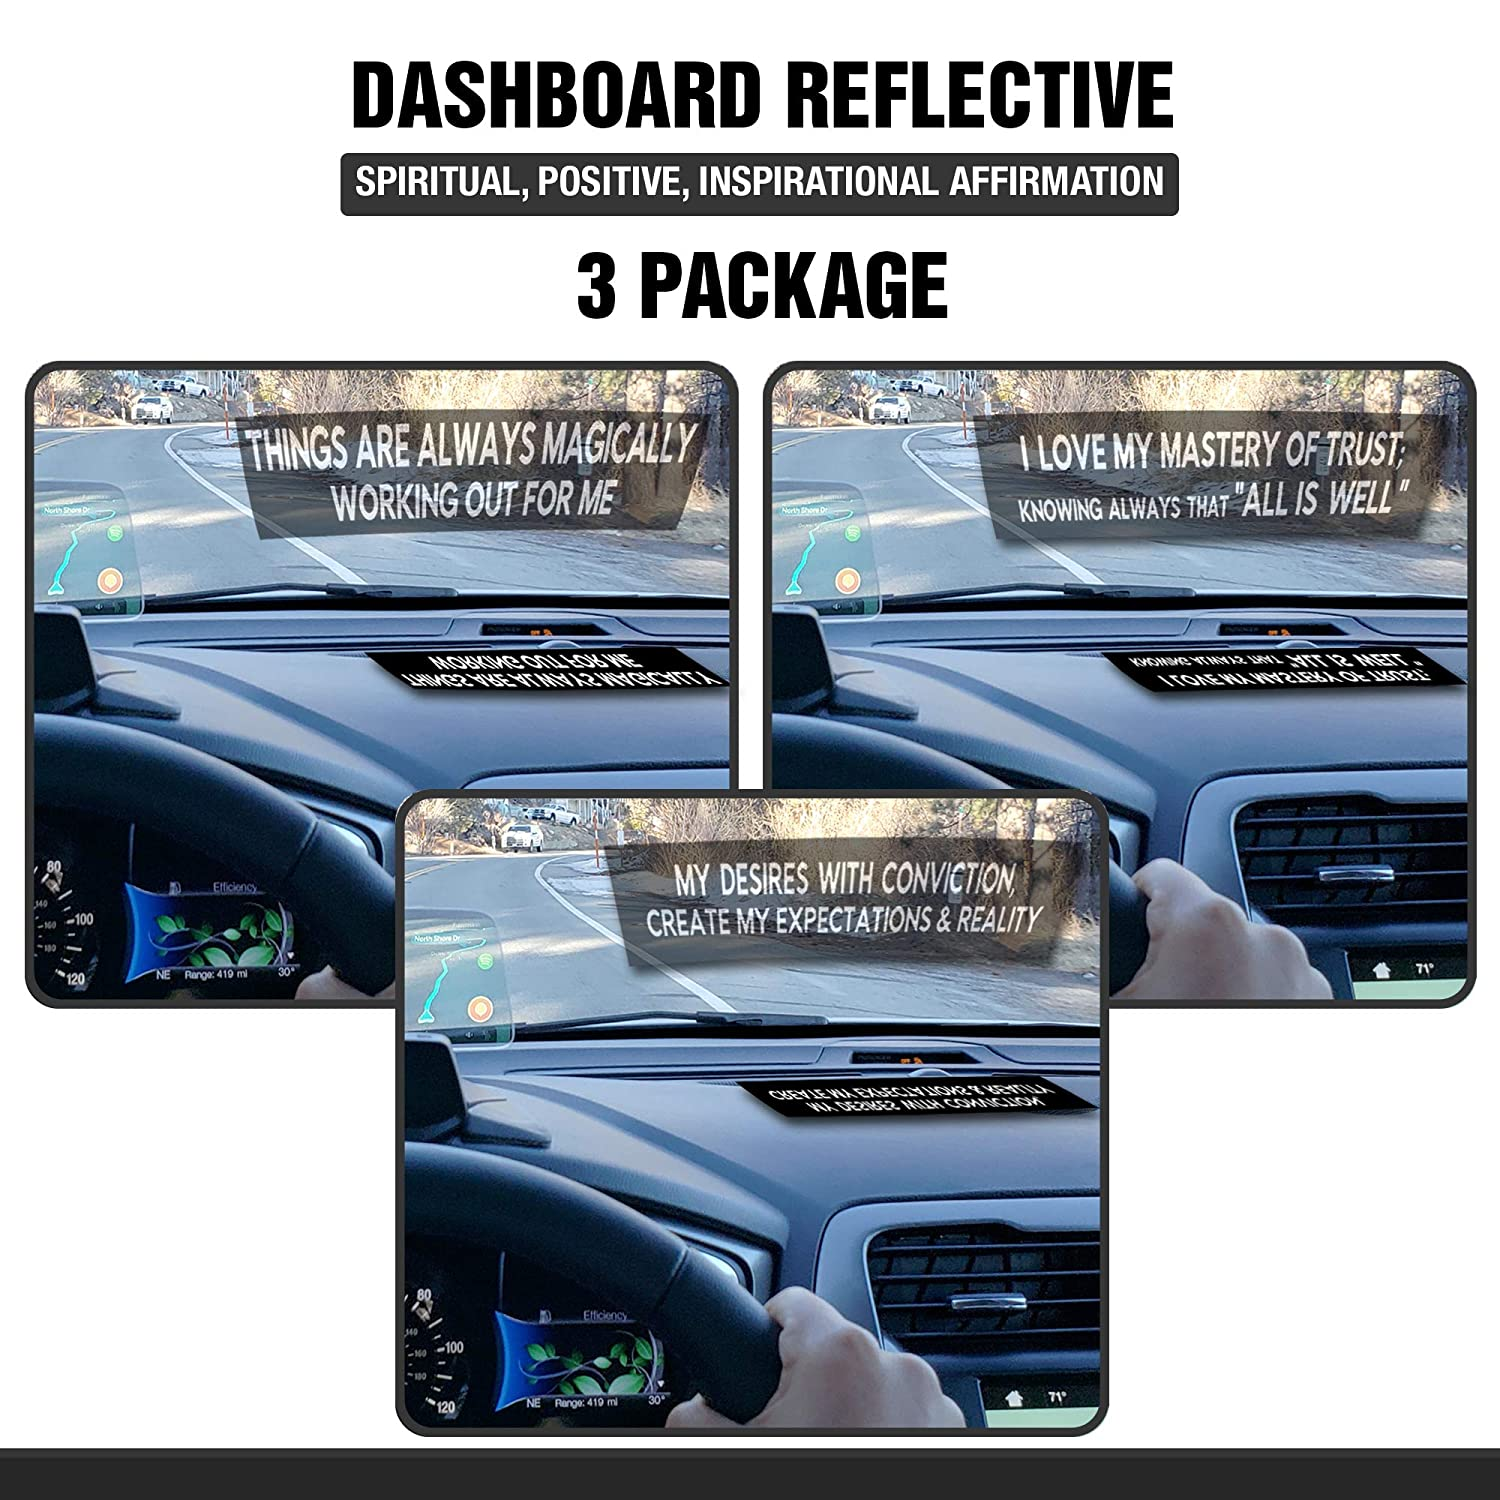 Dashboard Reflective - Spiritual, Positive, Inspirational Affirmation - 3 Package